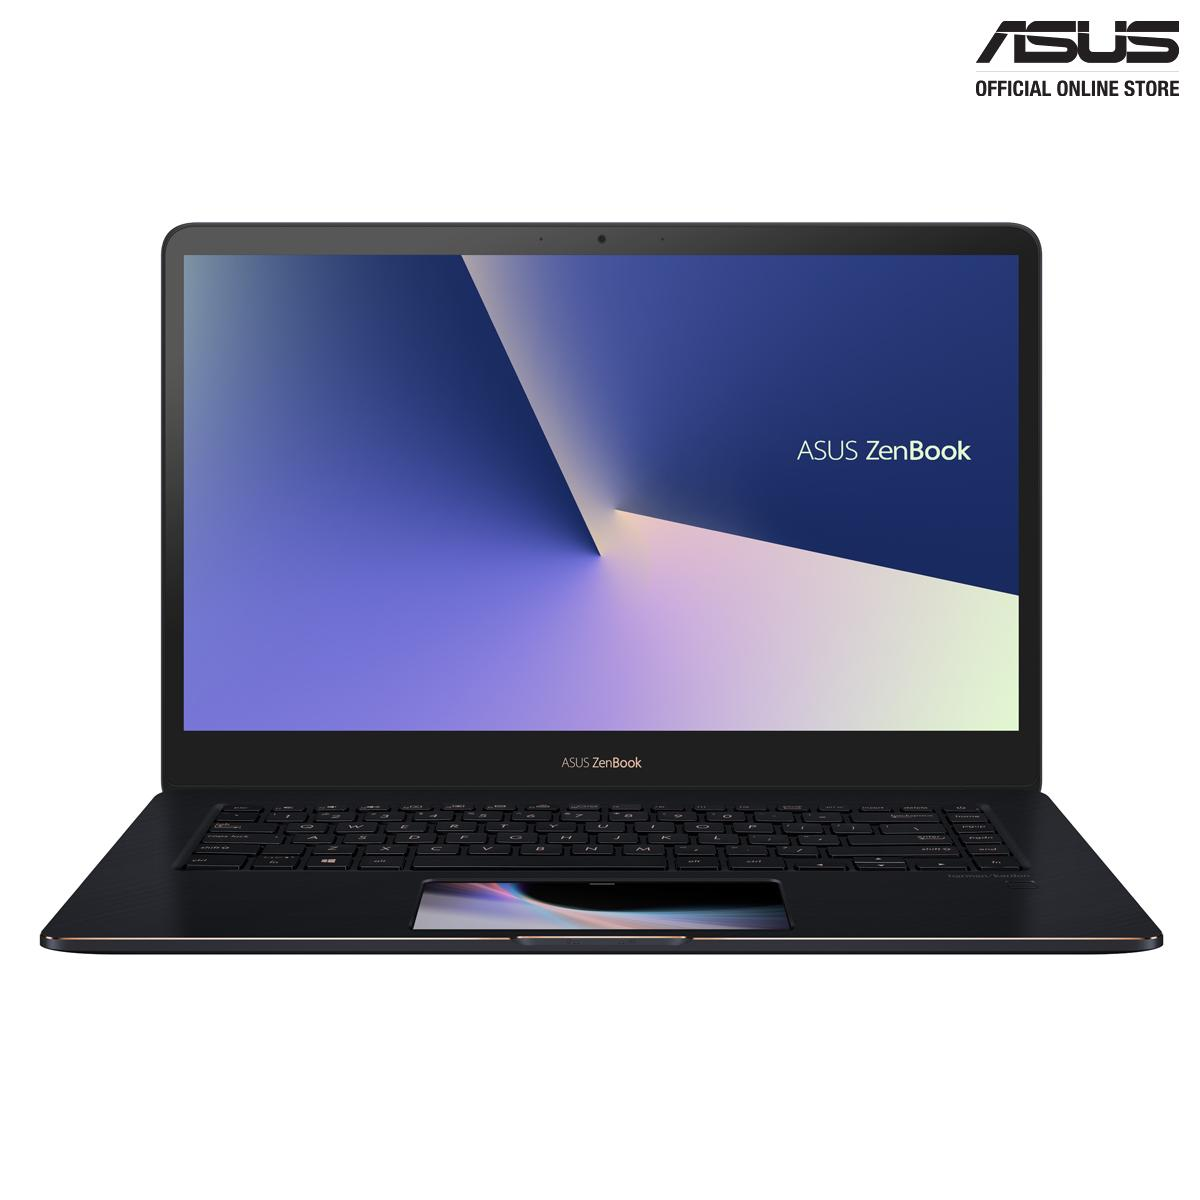 [Pre Order] ASUS Zenbook Pro 15 UX580GE-E2032T (Deep Dive Blue) – Delivery from 11 July